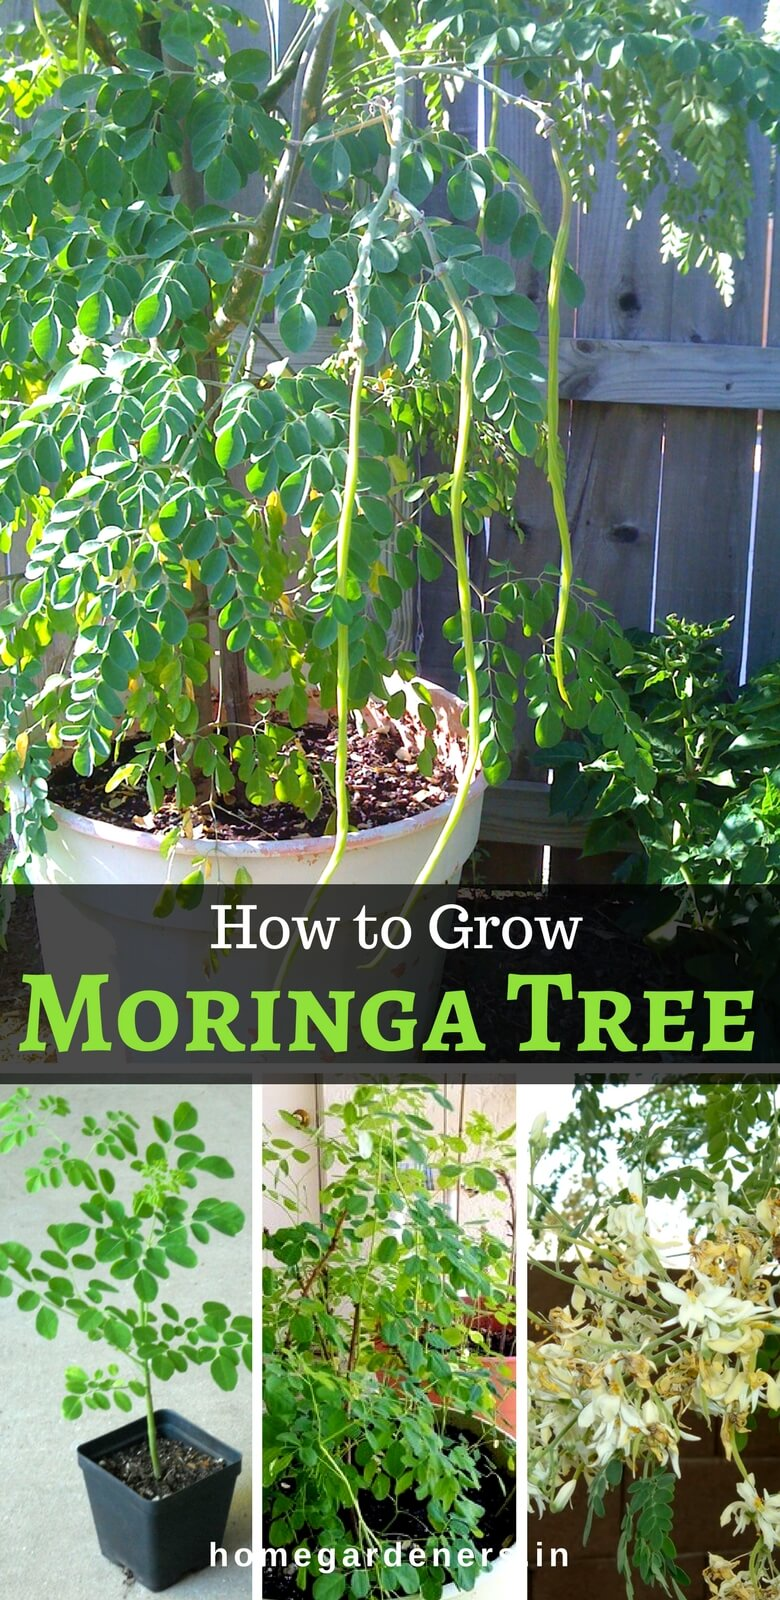 Moringa Tree - Growing, Caring & Health Benefits for the Drumstick tree